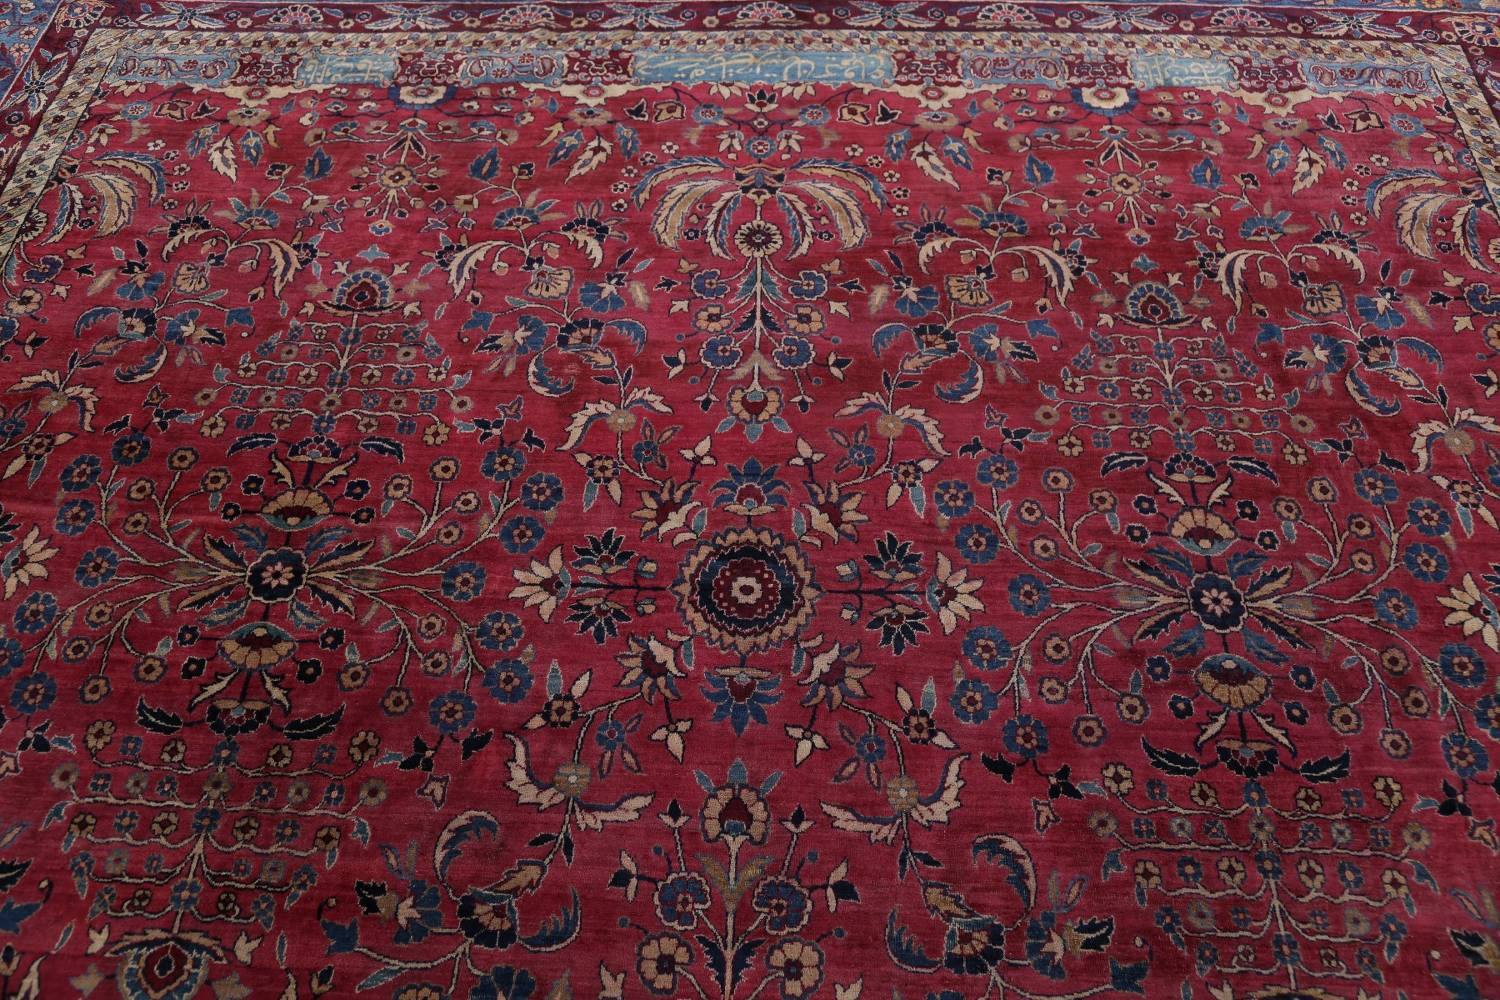 Pre-1900 Antique Floral Sultanabad Persian Hand-Knotted 12x18 Wool Rug image 21